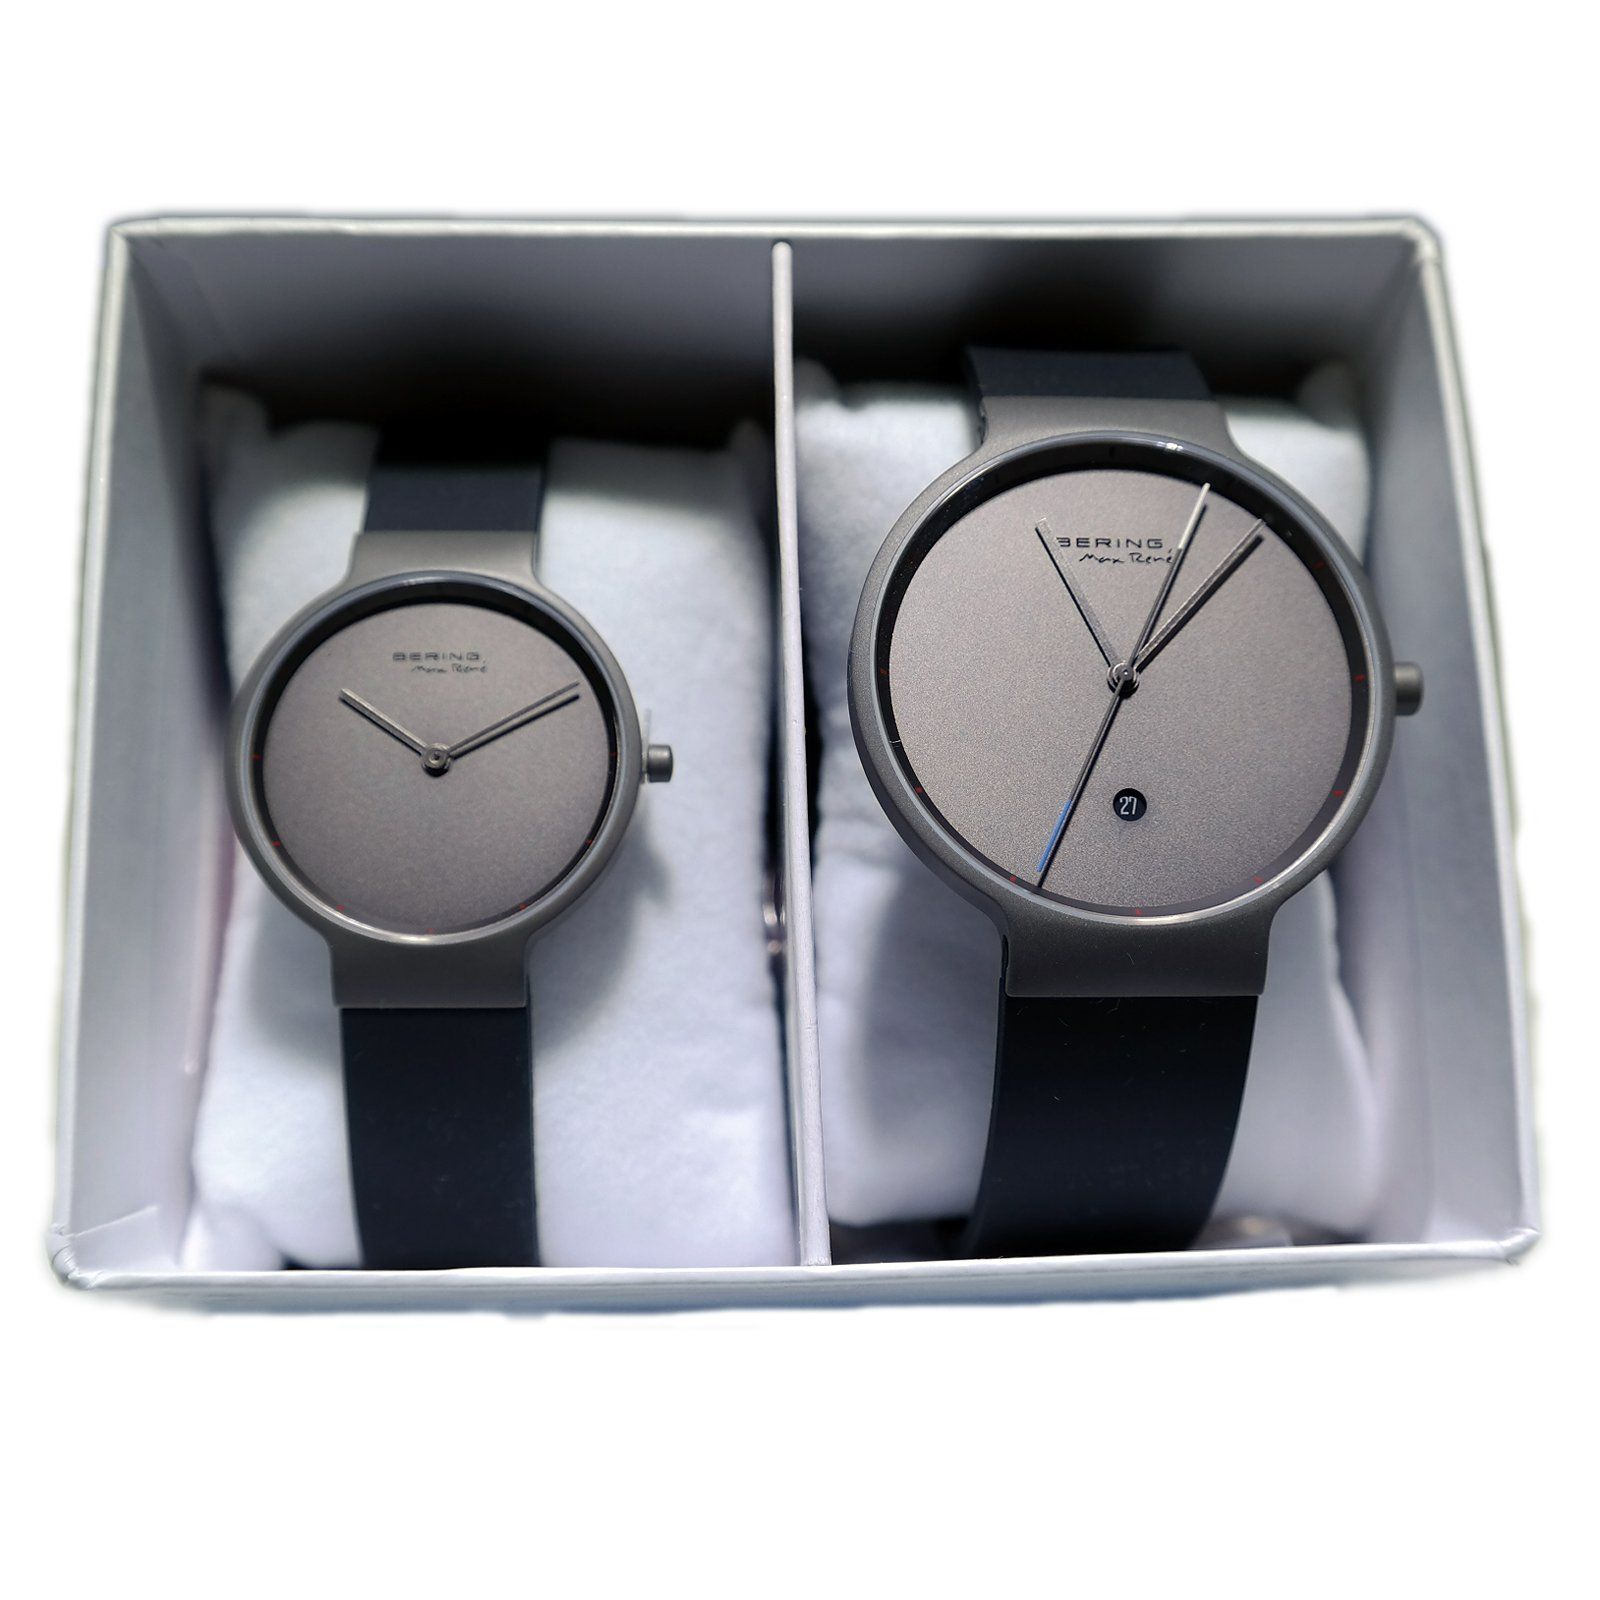 BERING MAX RENE His and Hers Watches Gift Set, MRGS11   gift ideas ...